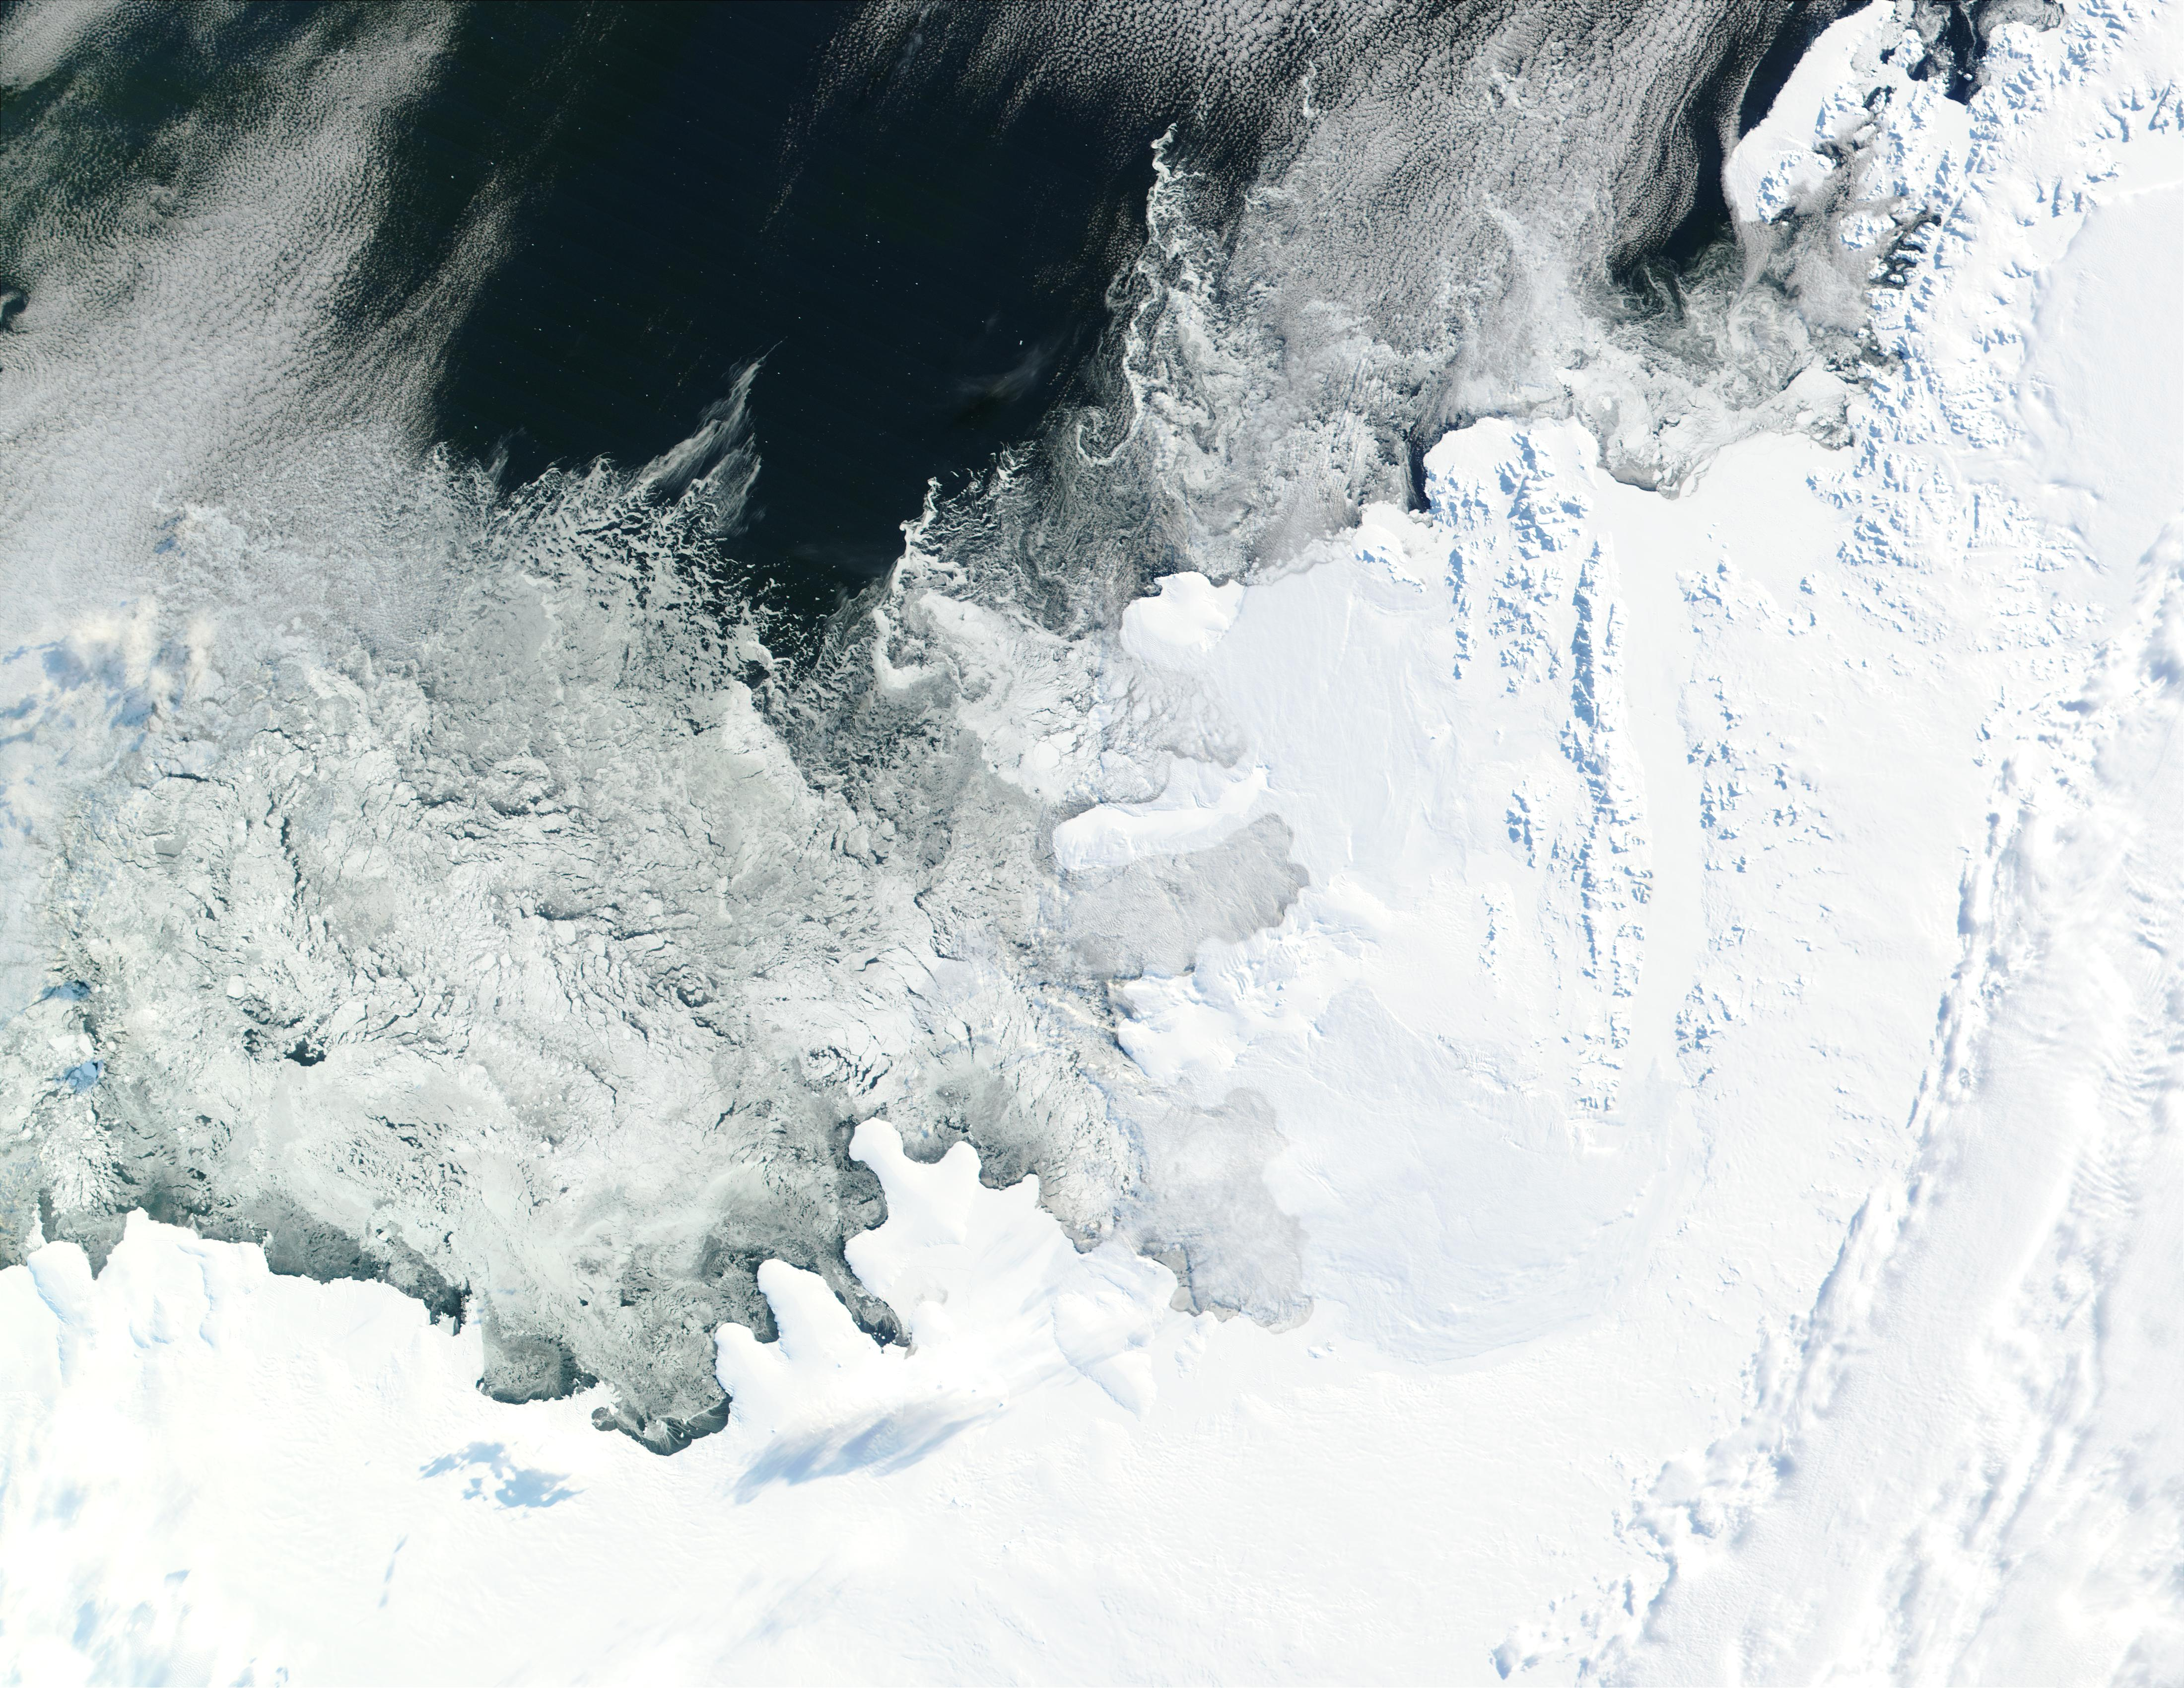 Bryan Coast, English Coast, Alexander Island, Fallieres Coast, and Bellingshausen Sea, Antarctica - related image preview